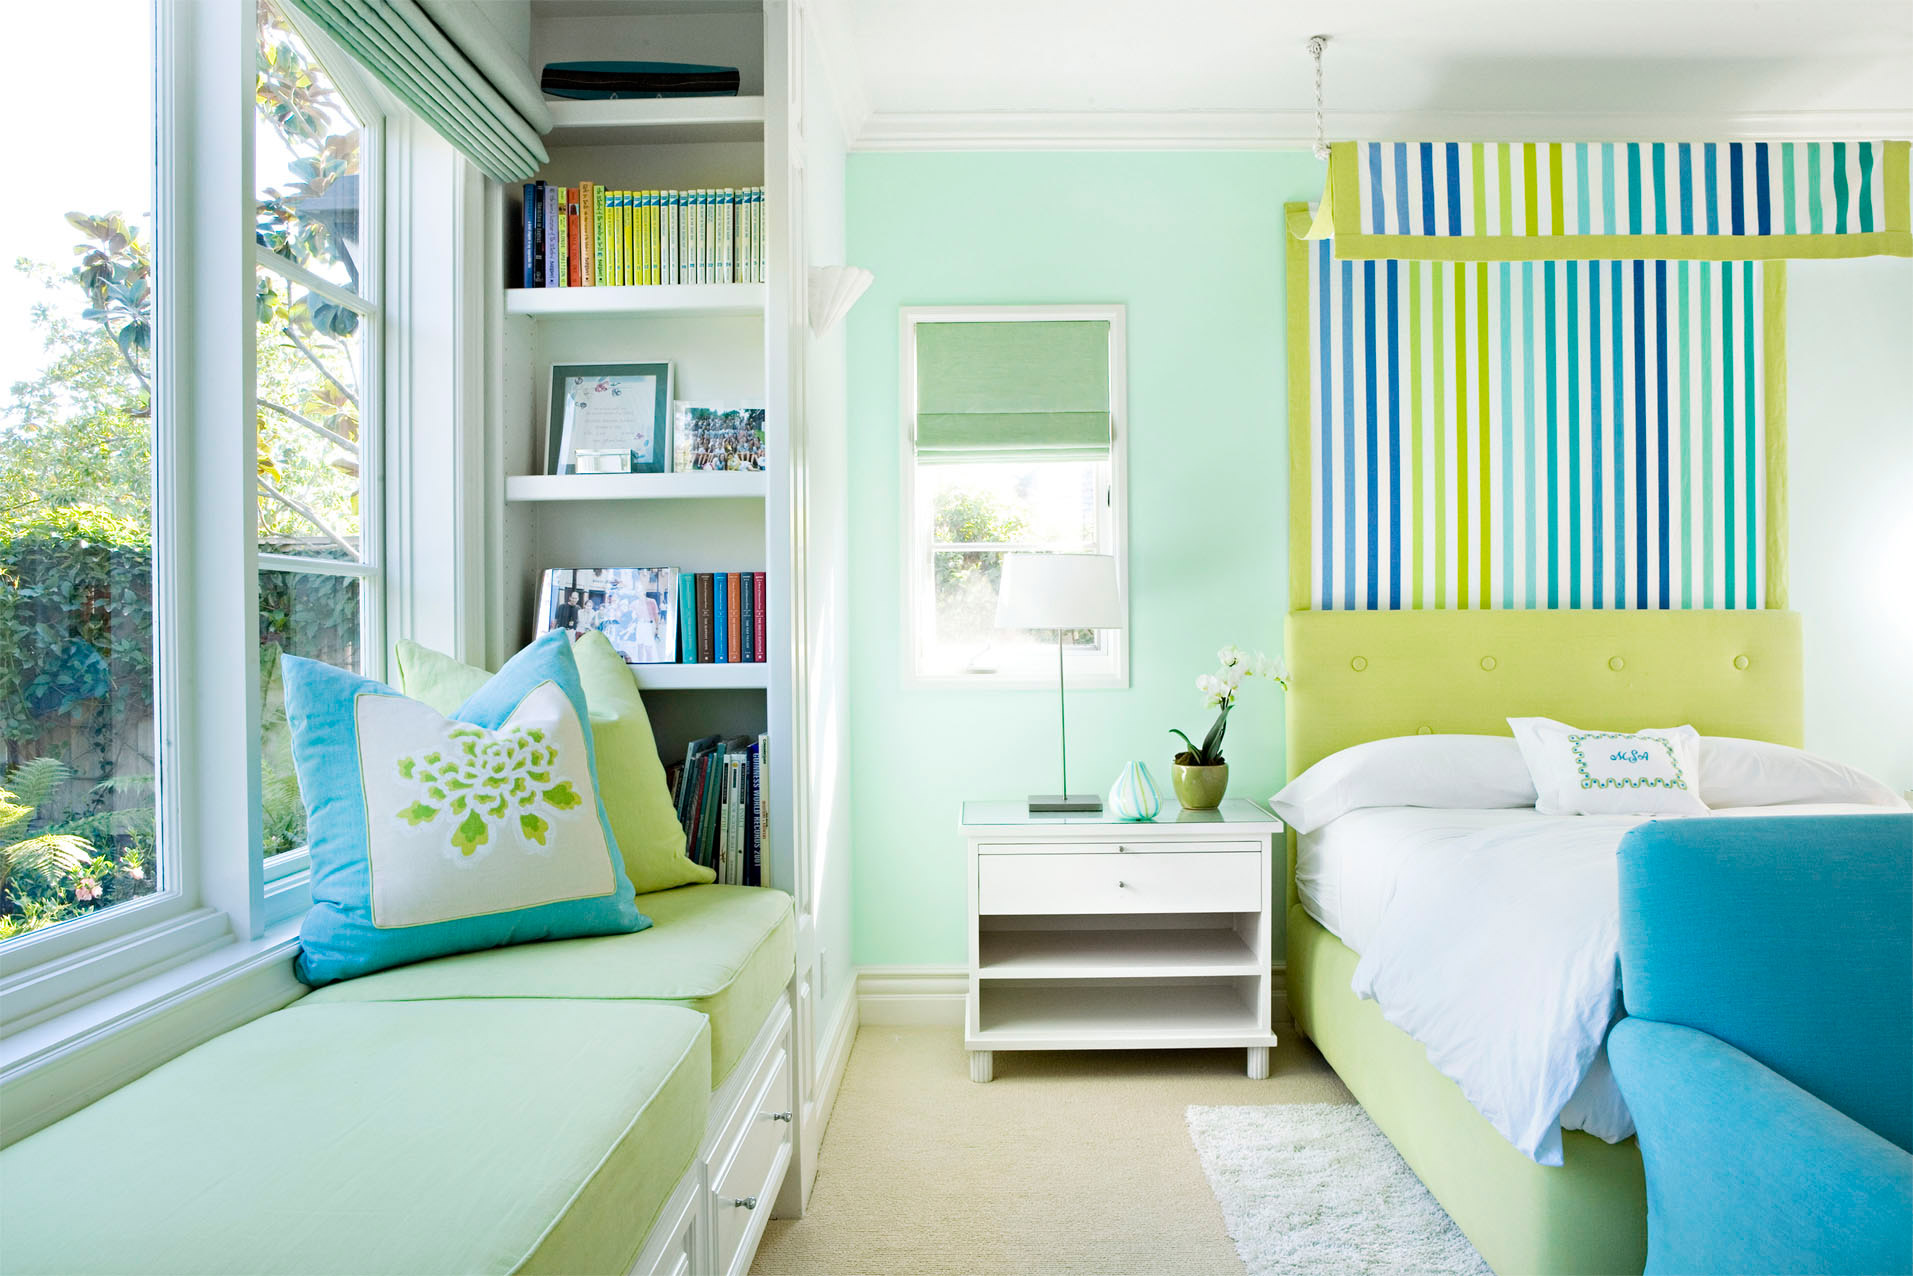 Paint Colors For Small Bedrooms: Paint Color Ideas For Bedrooms